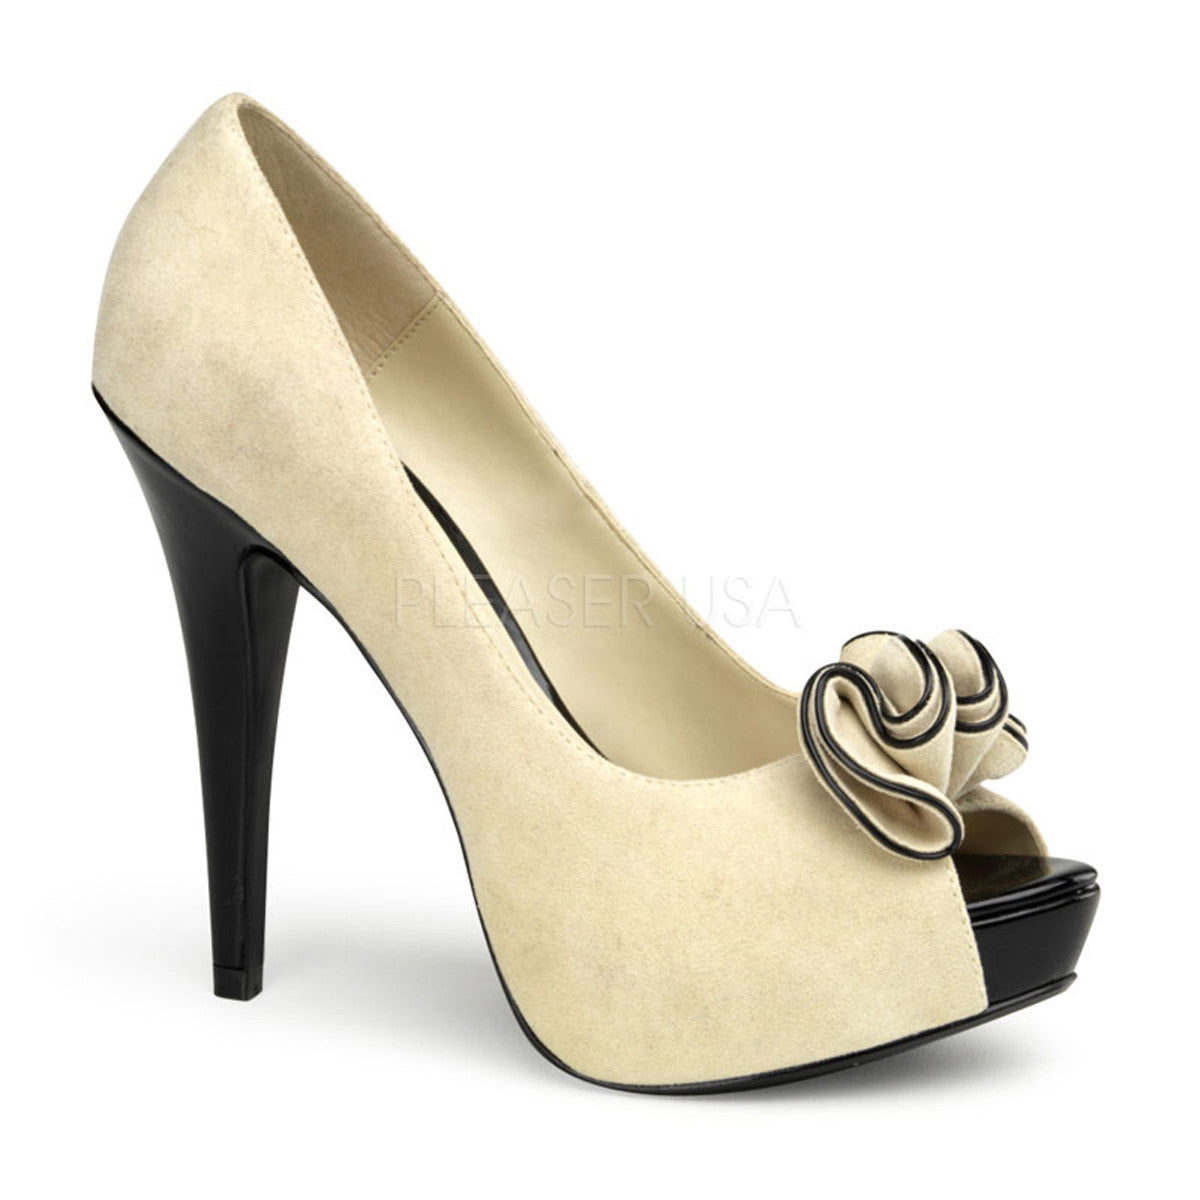 Pin Up Couture LOLITA-10 Beige Suede Pu Peep Toe Pumps - Shoecup.com - 1